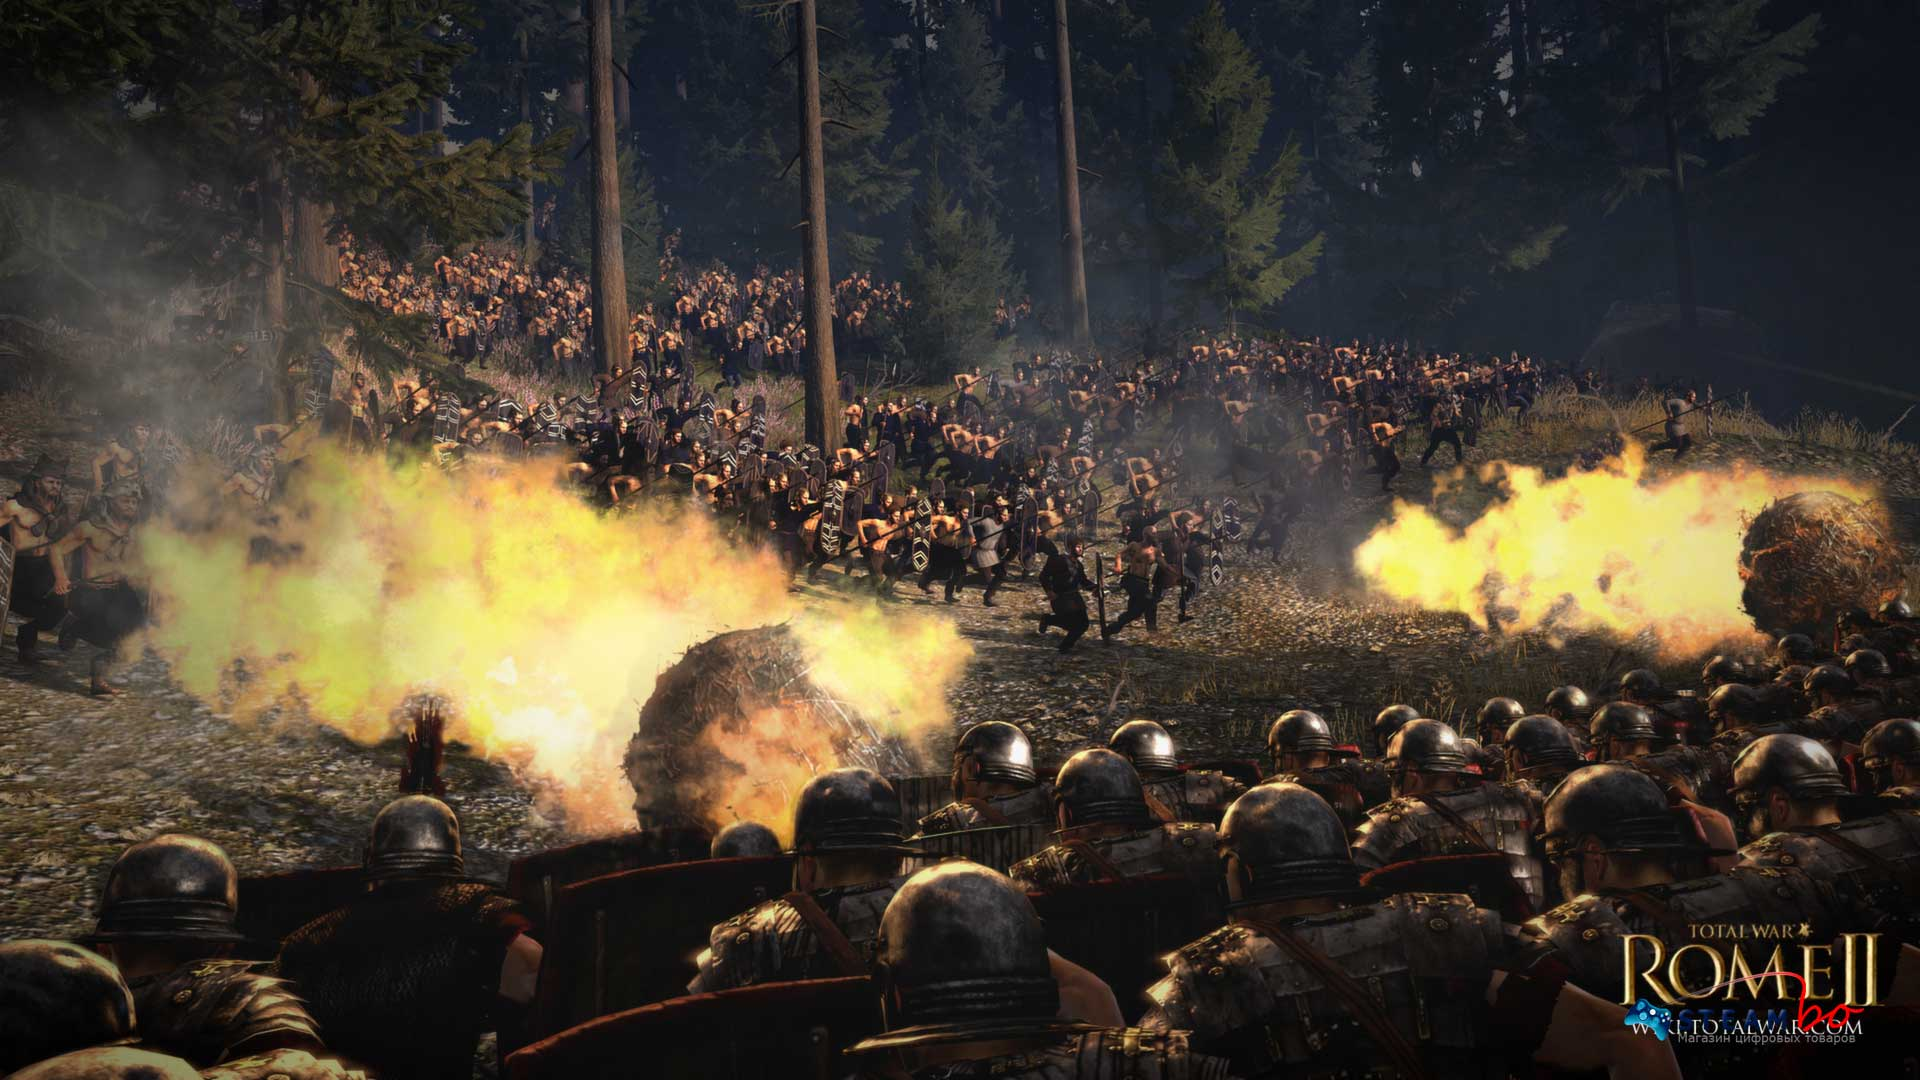 Total War: Rome II Emperor Region Free (Steam Gift/Key)